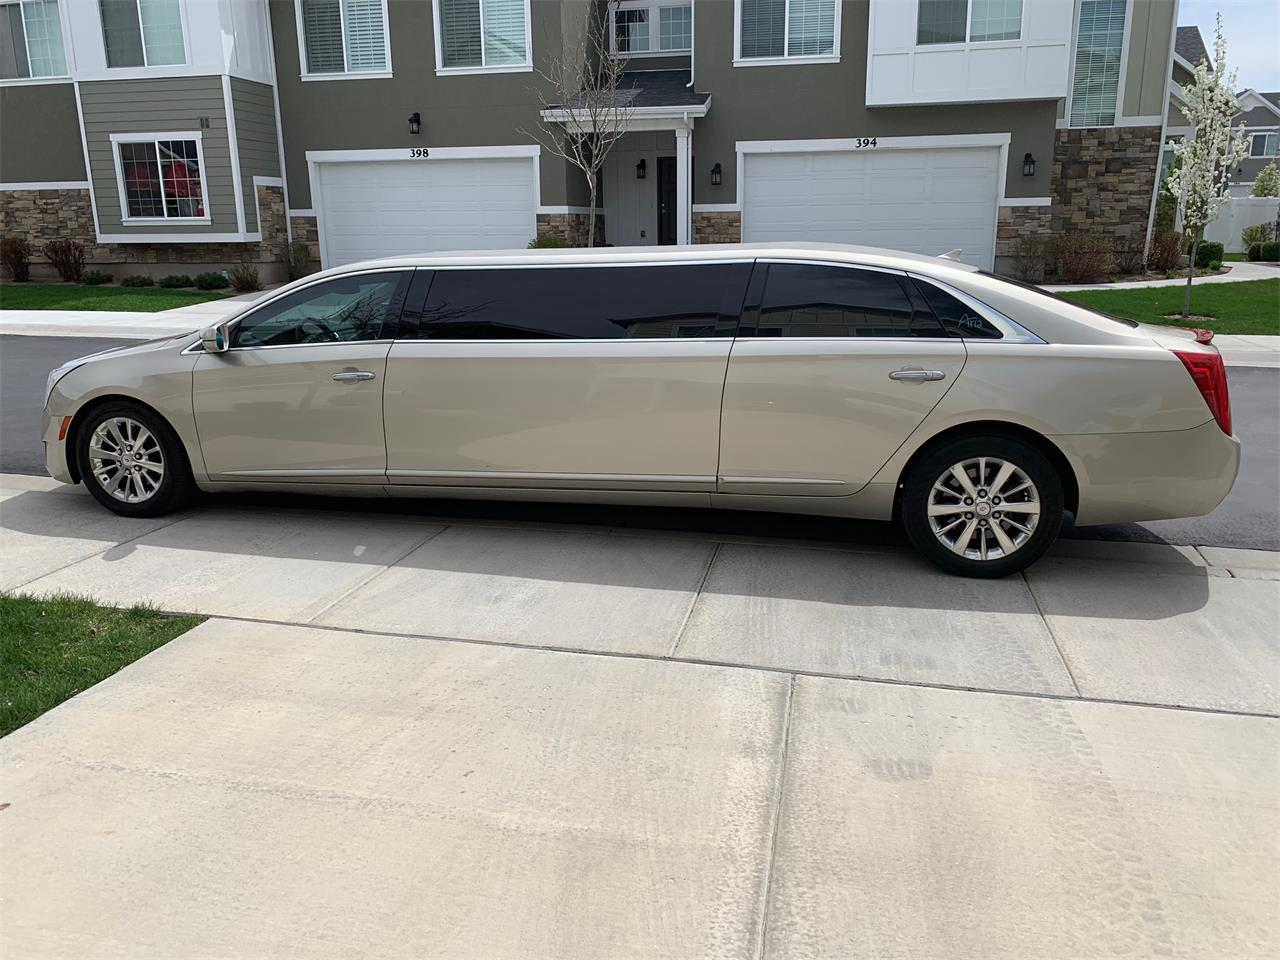 2014 Cadillac Limousine (CC-1362518) for sale in Sandy, Utah